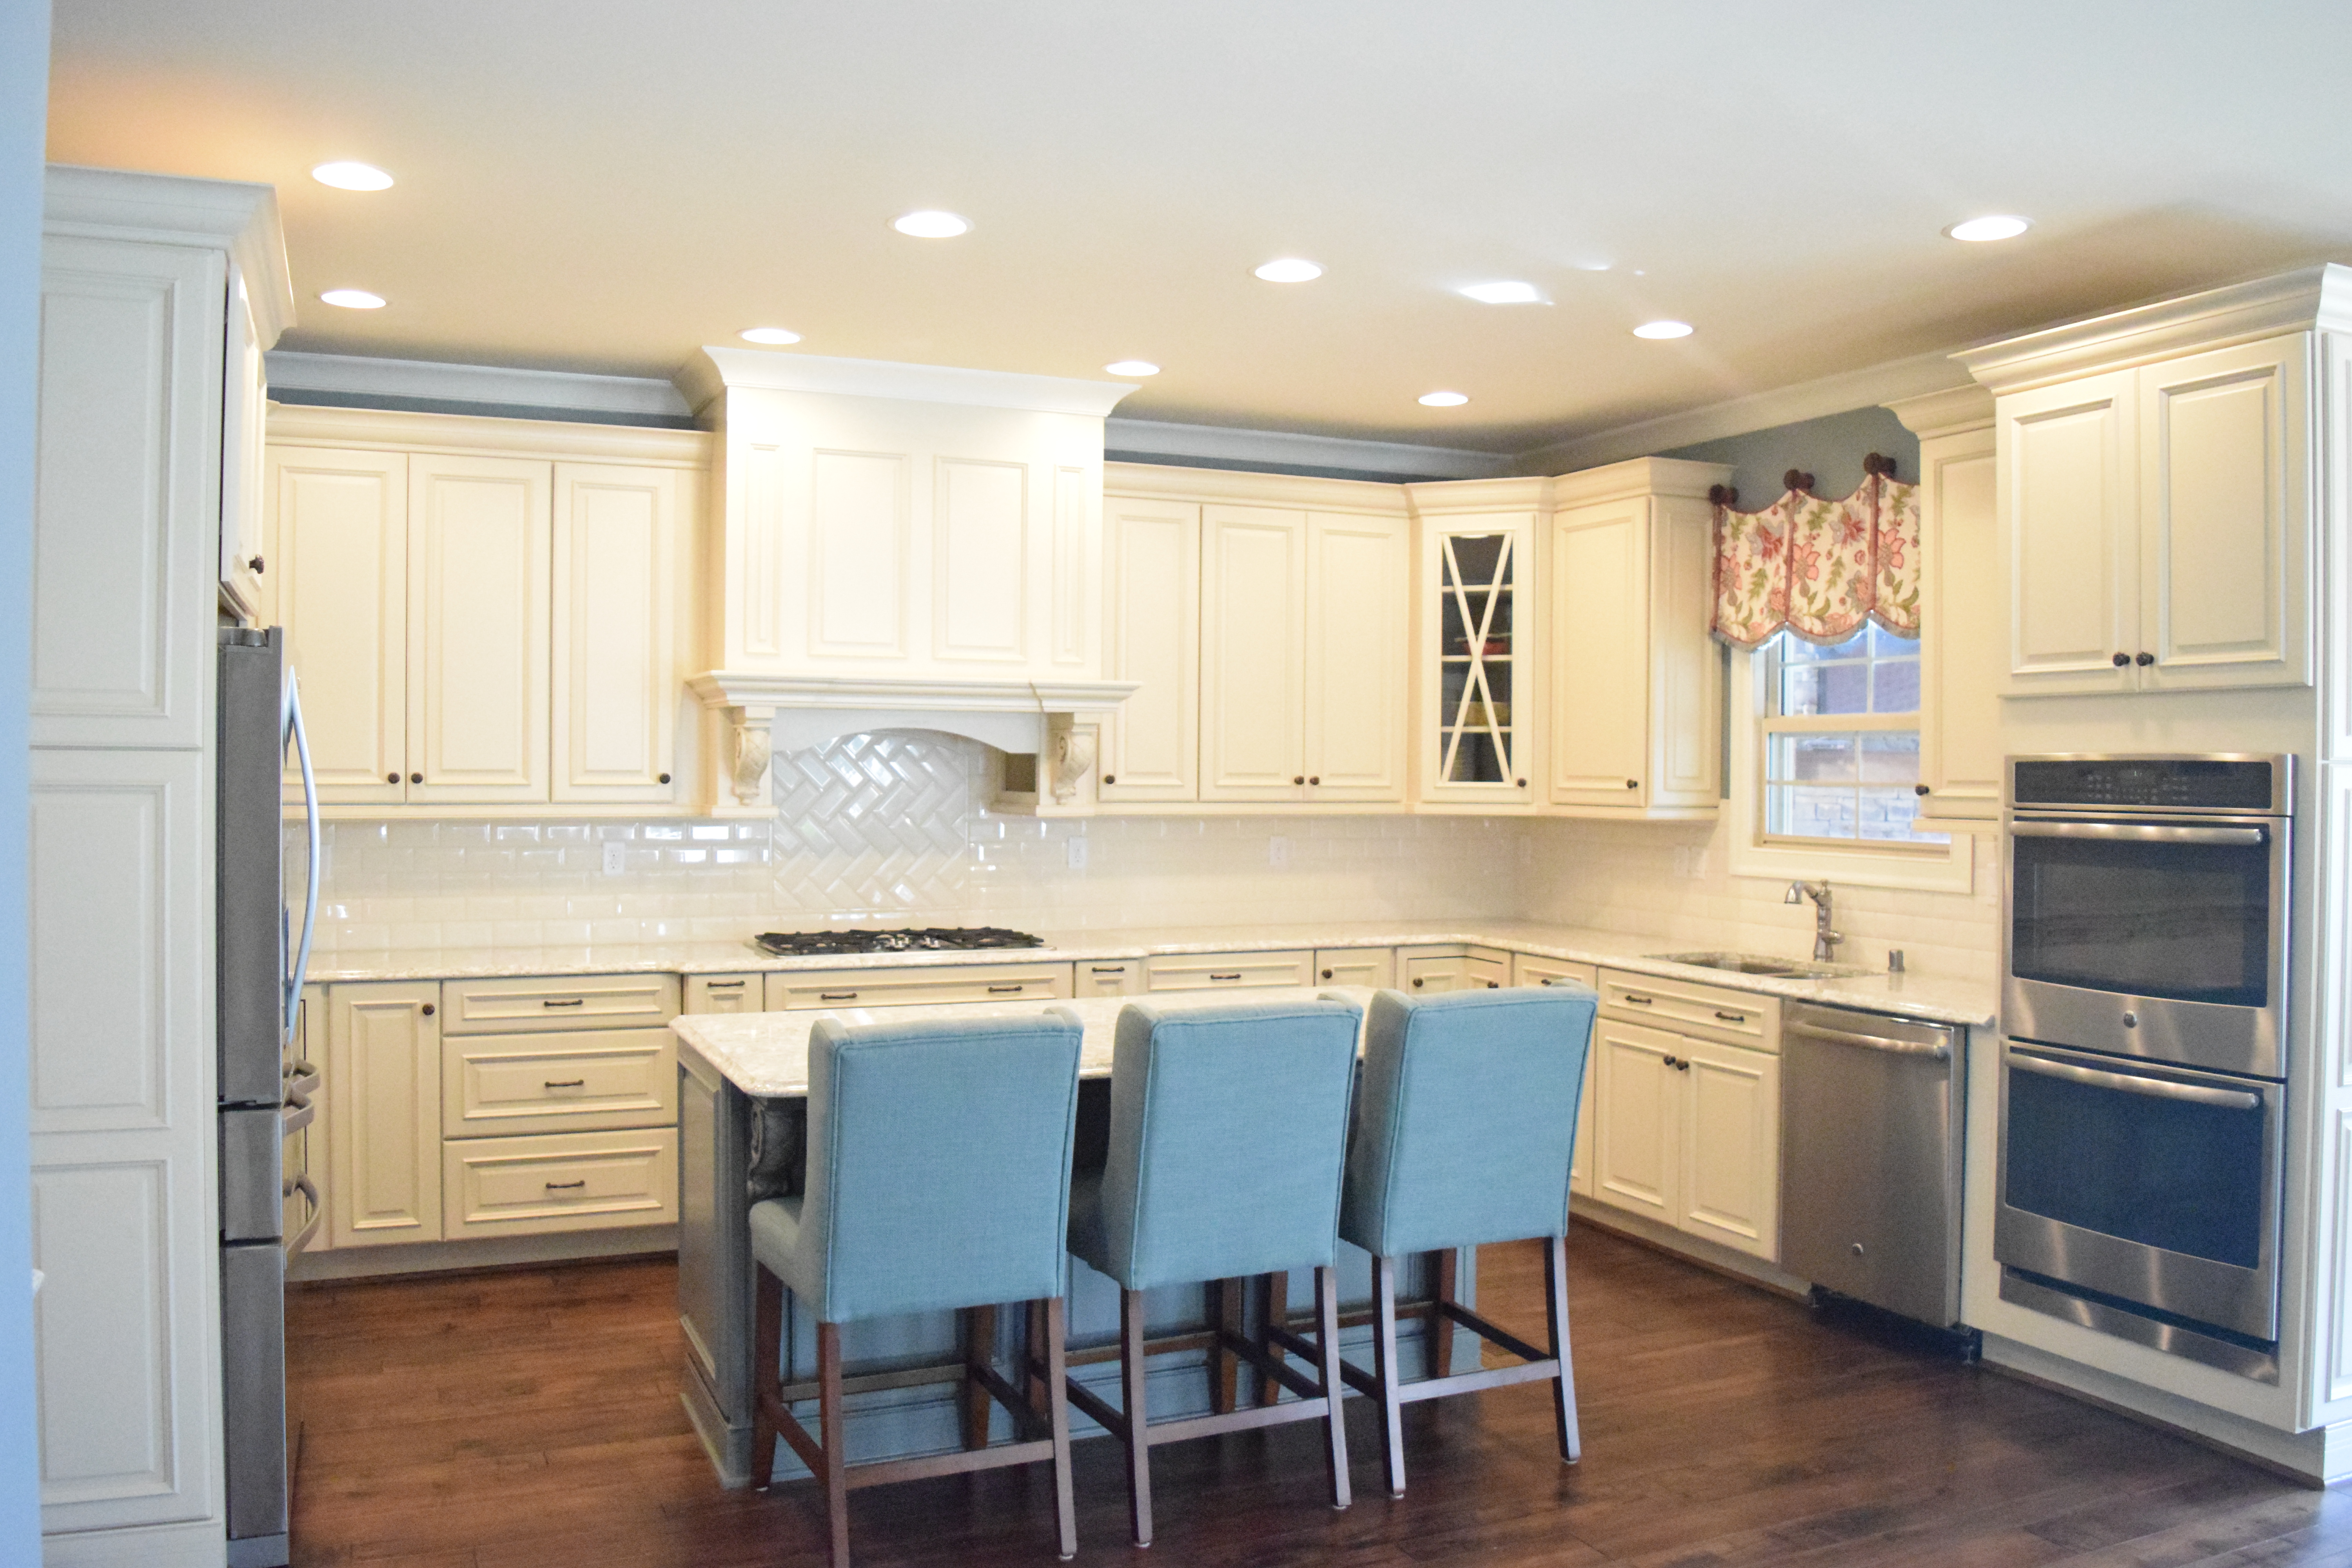 Cabinetry & Hardware - LLDS Home Store & Design Studio